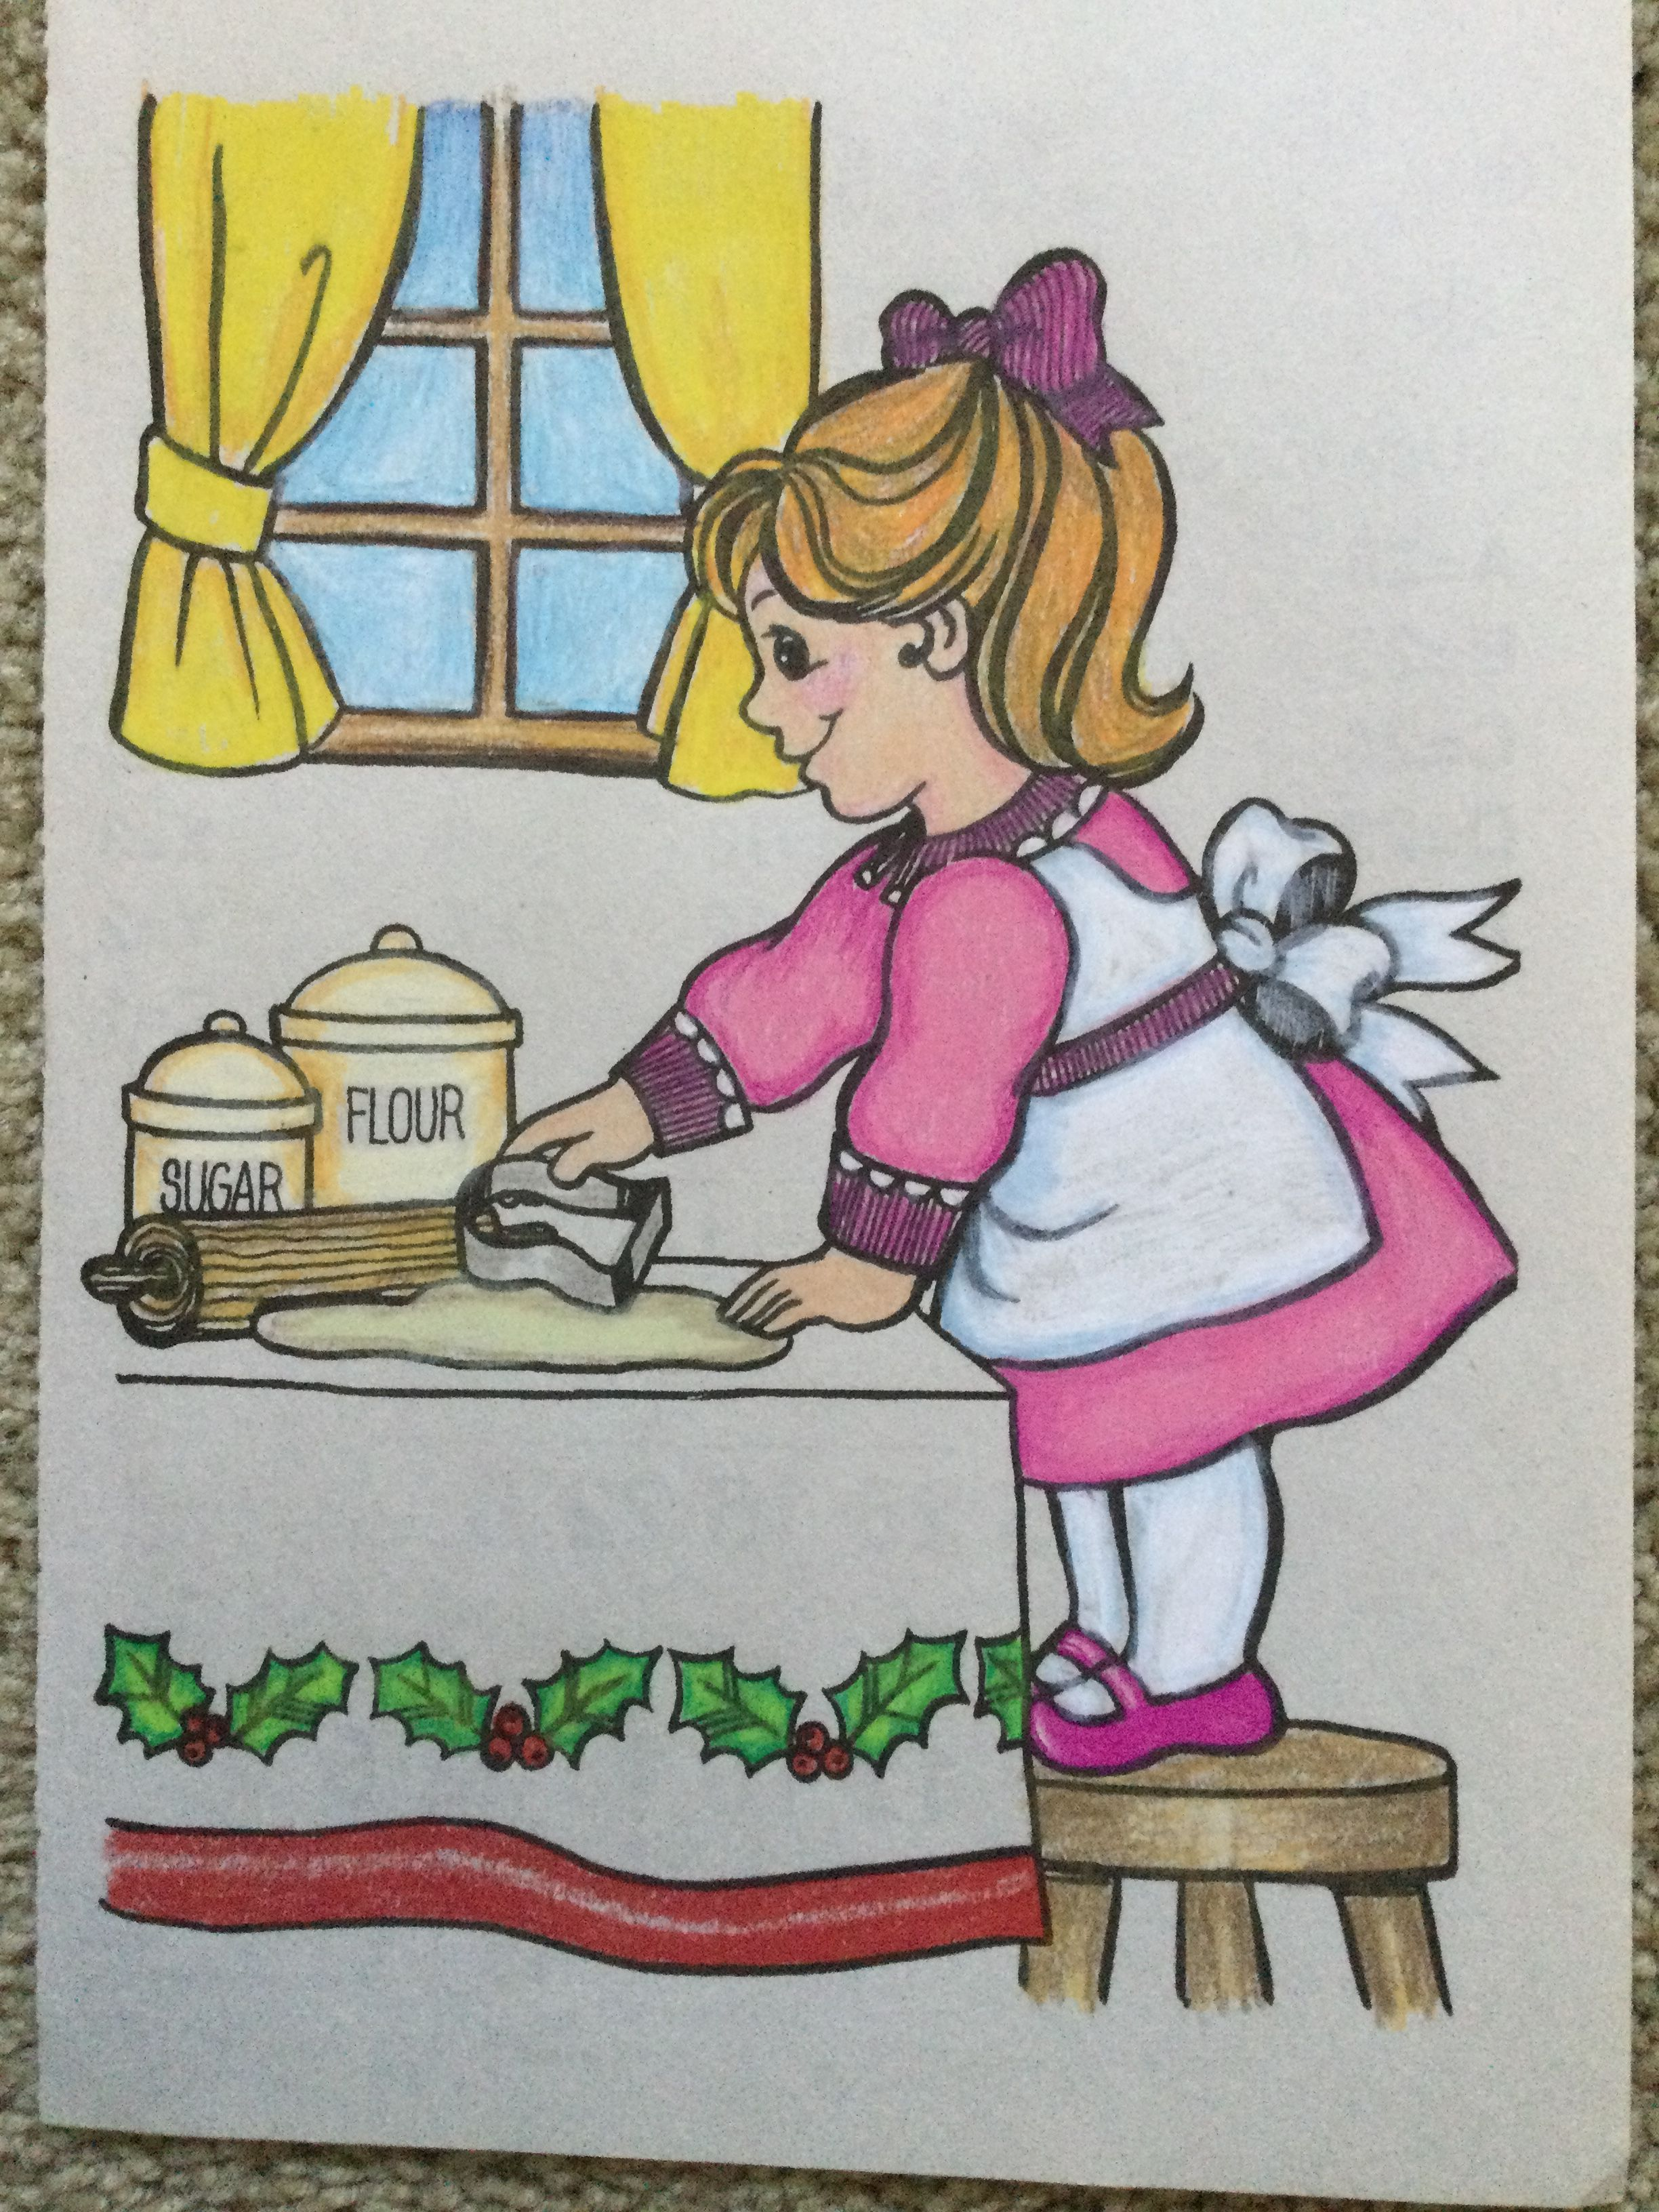 Pin By Patsy Langanki On My Coloring Cute Easy Doodles Colorful Drawings Art Drawings For Kids